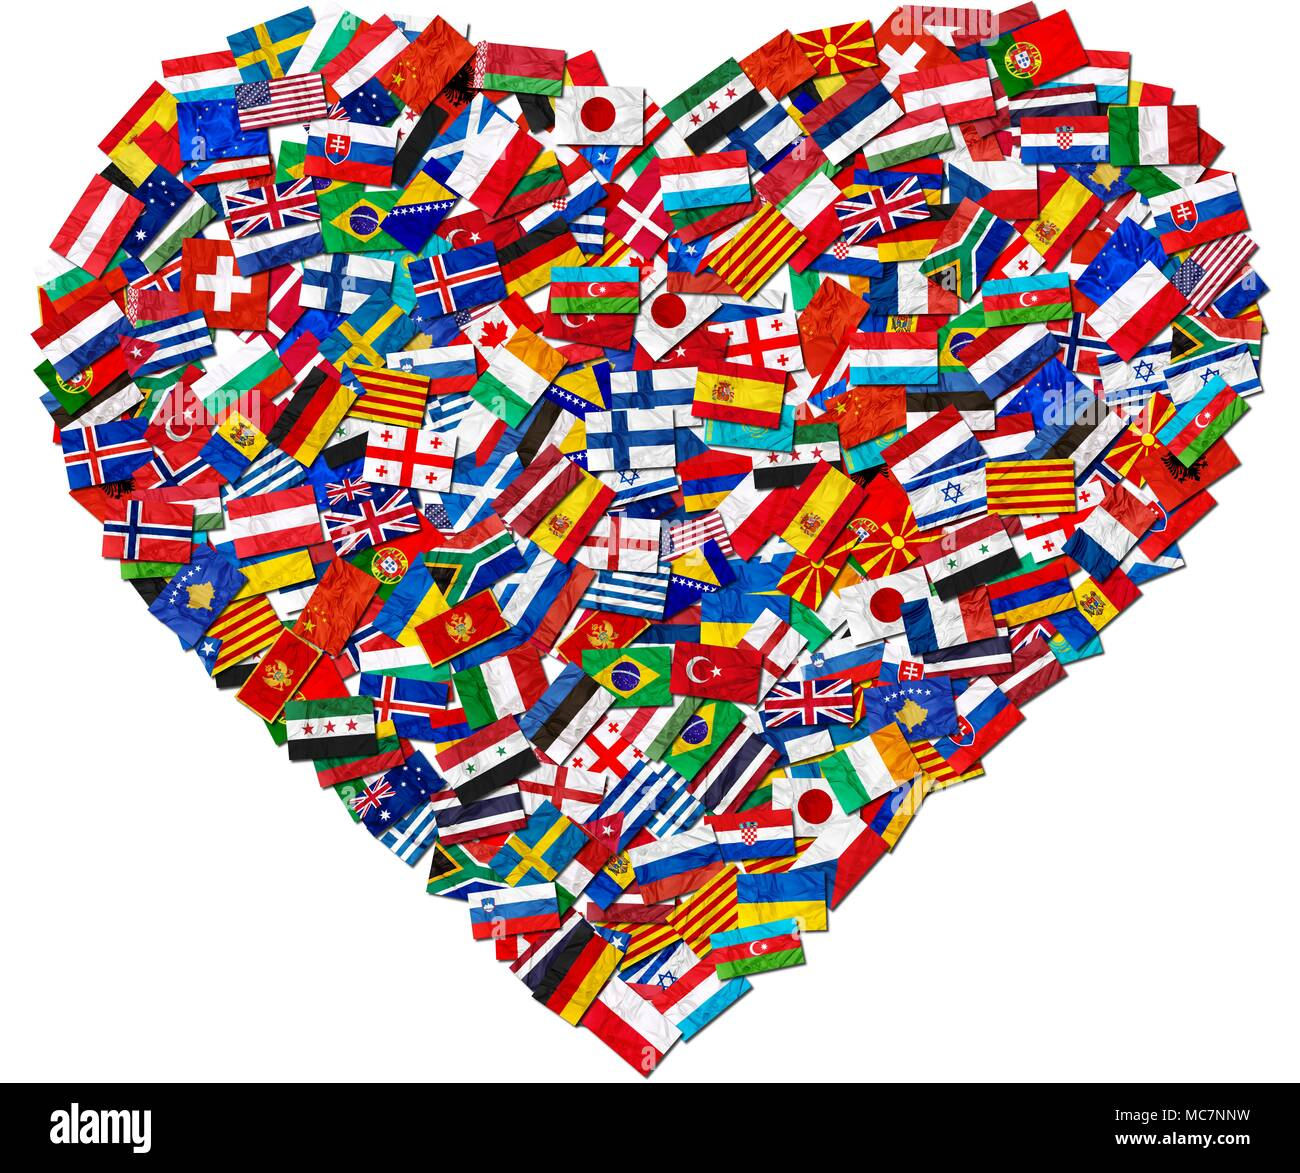 Flags of world countries and in heart love shape on white background: England Russia Italy Spain Scotland Germany US, China Greece France Brazil Japan